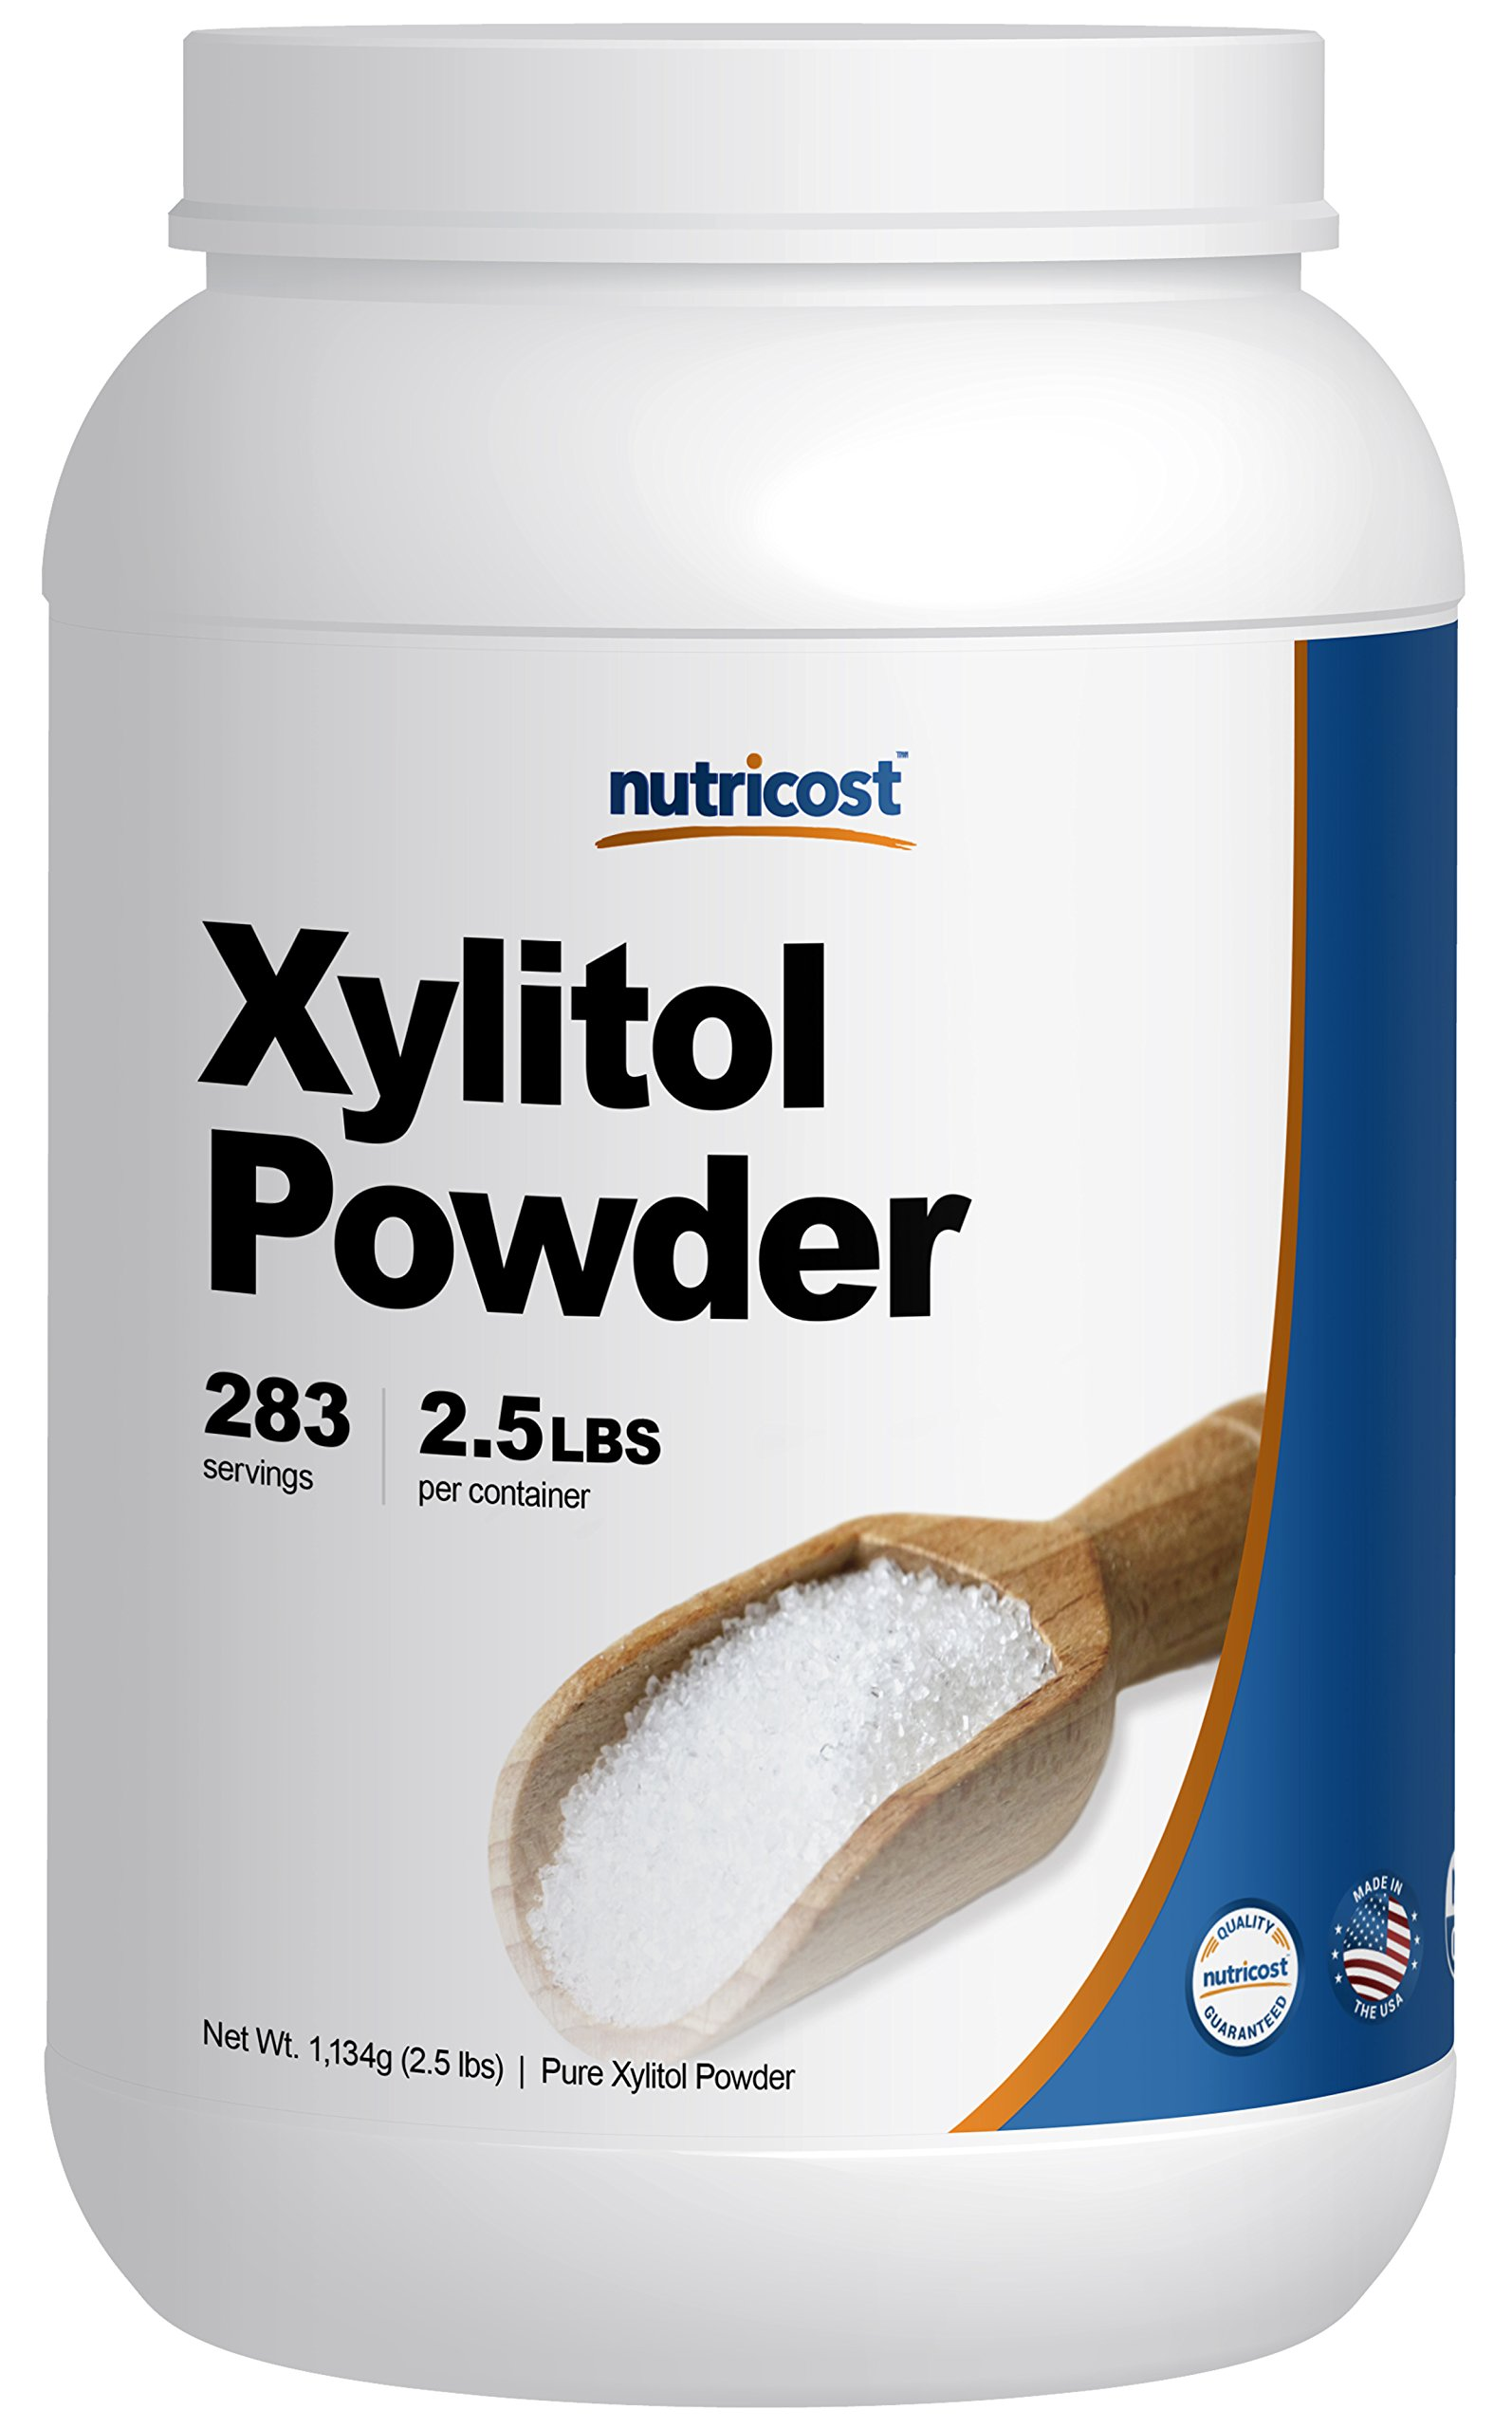 Nutricost Pure Xylitol Powder 2.5 Pounds